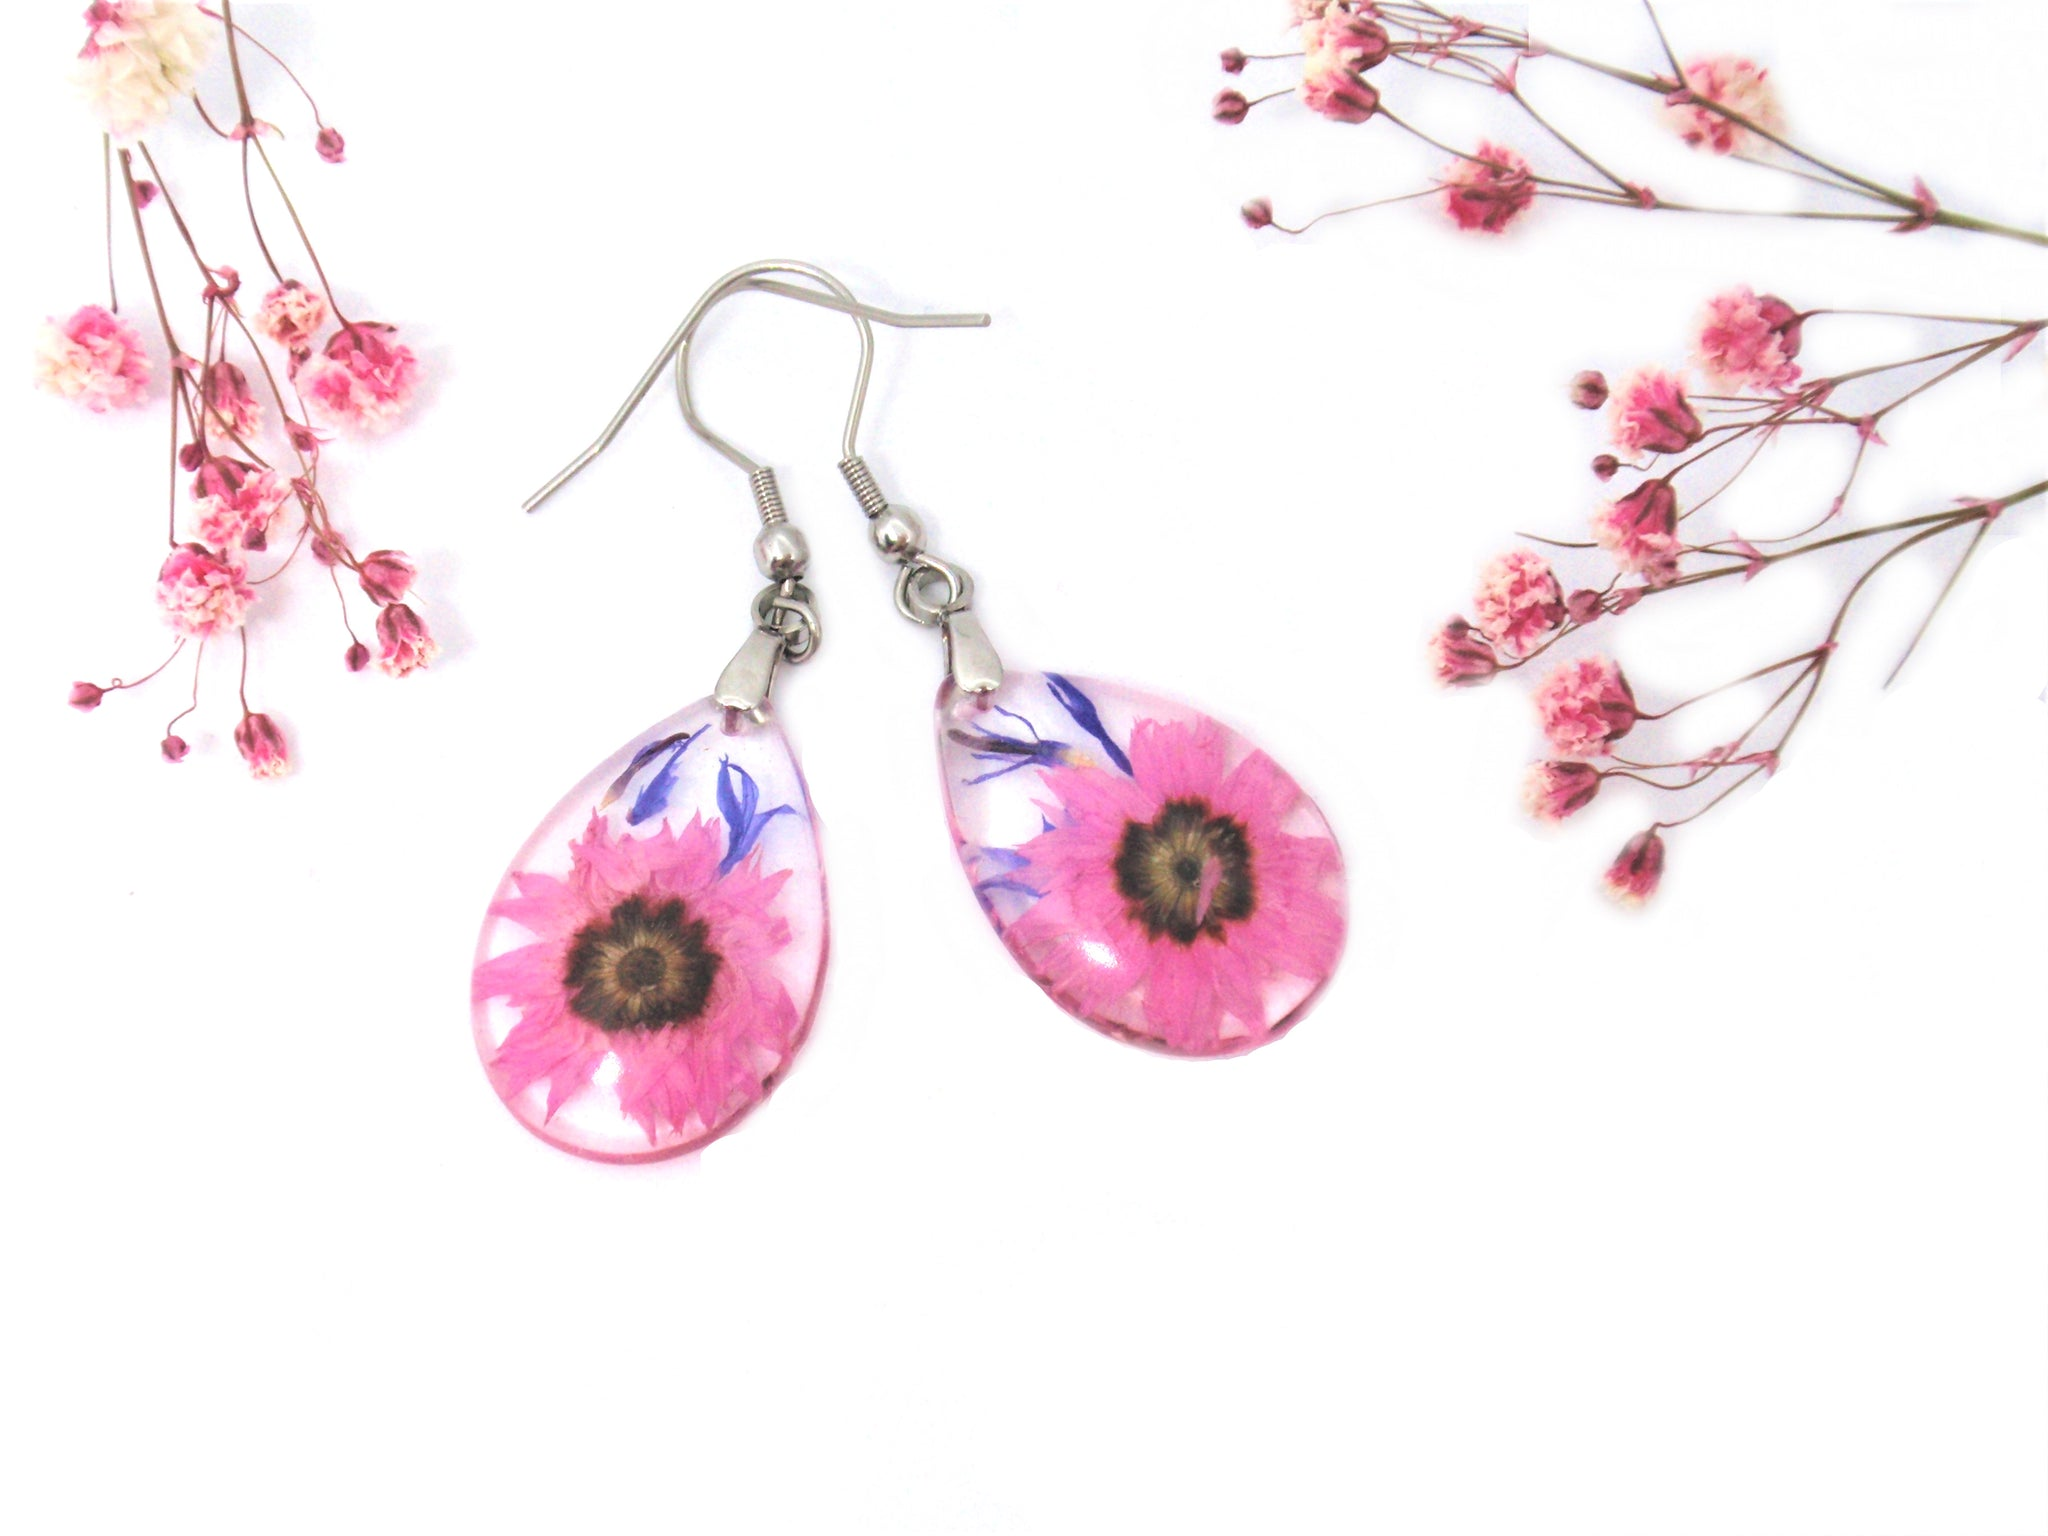 Handmade earrings with real flowers